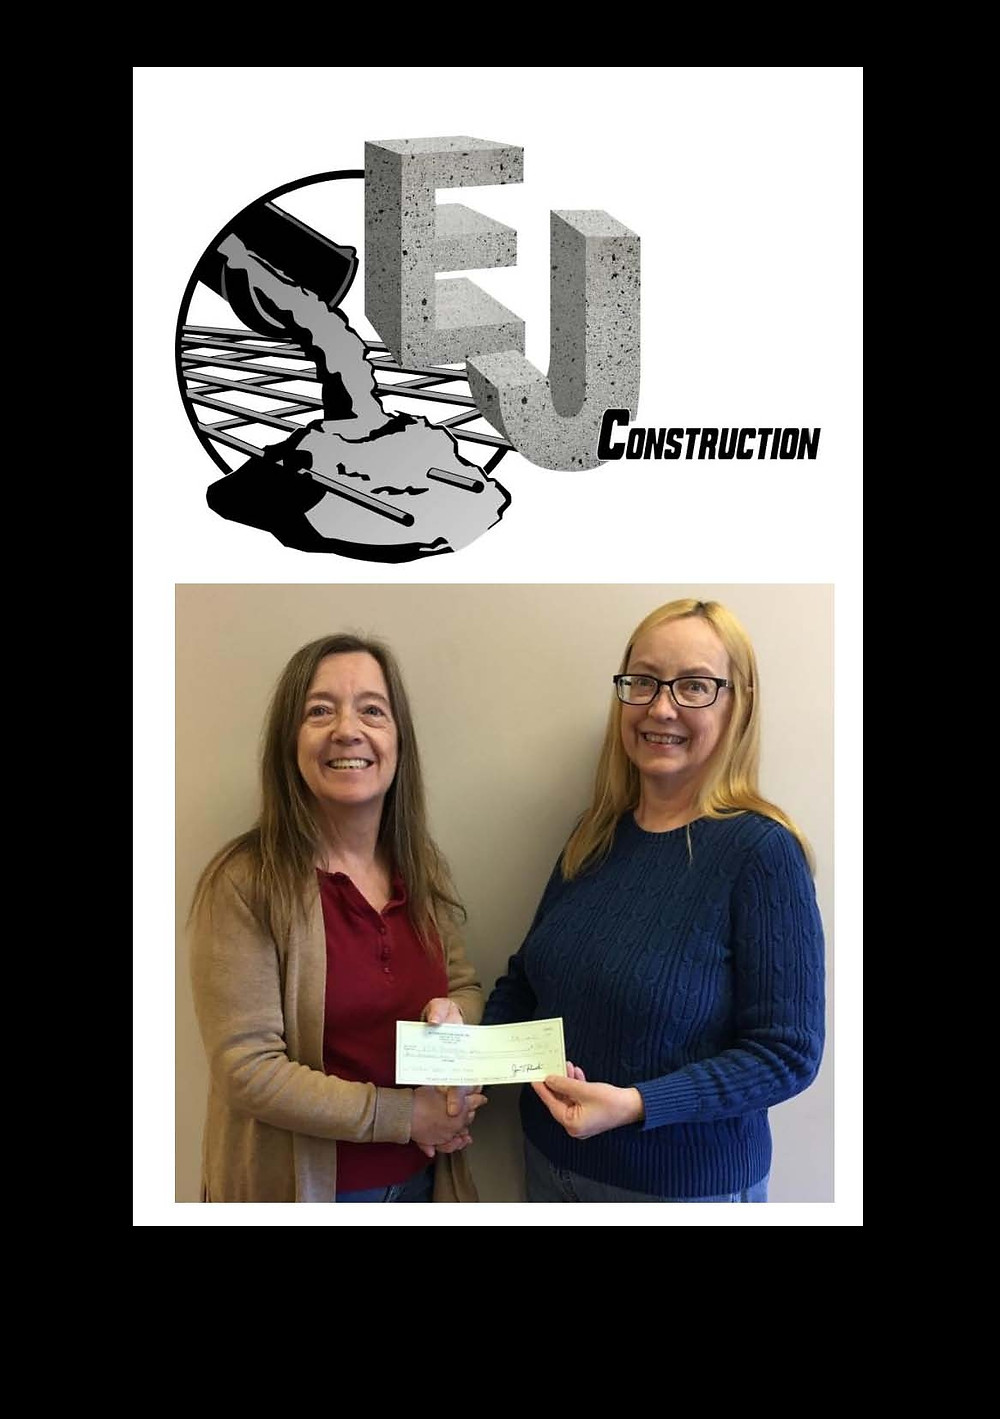 Bonnie Caza, Office Manager of EJ Construction Group, with Teresa Woolson